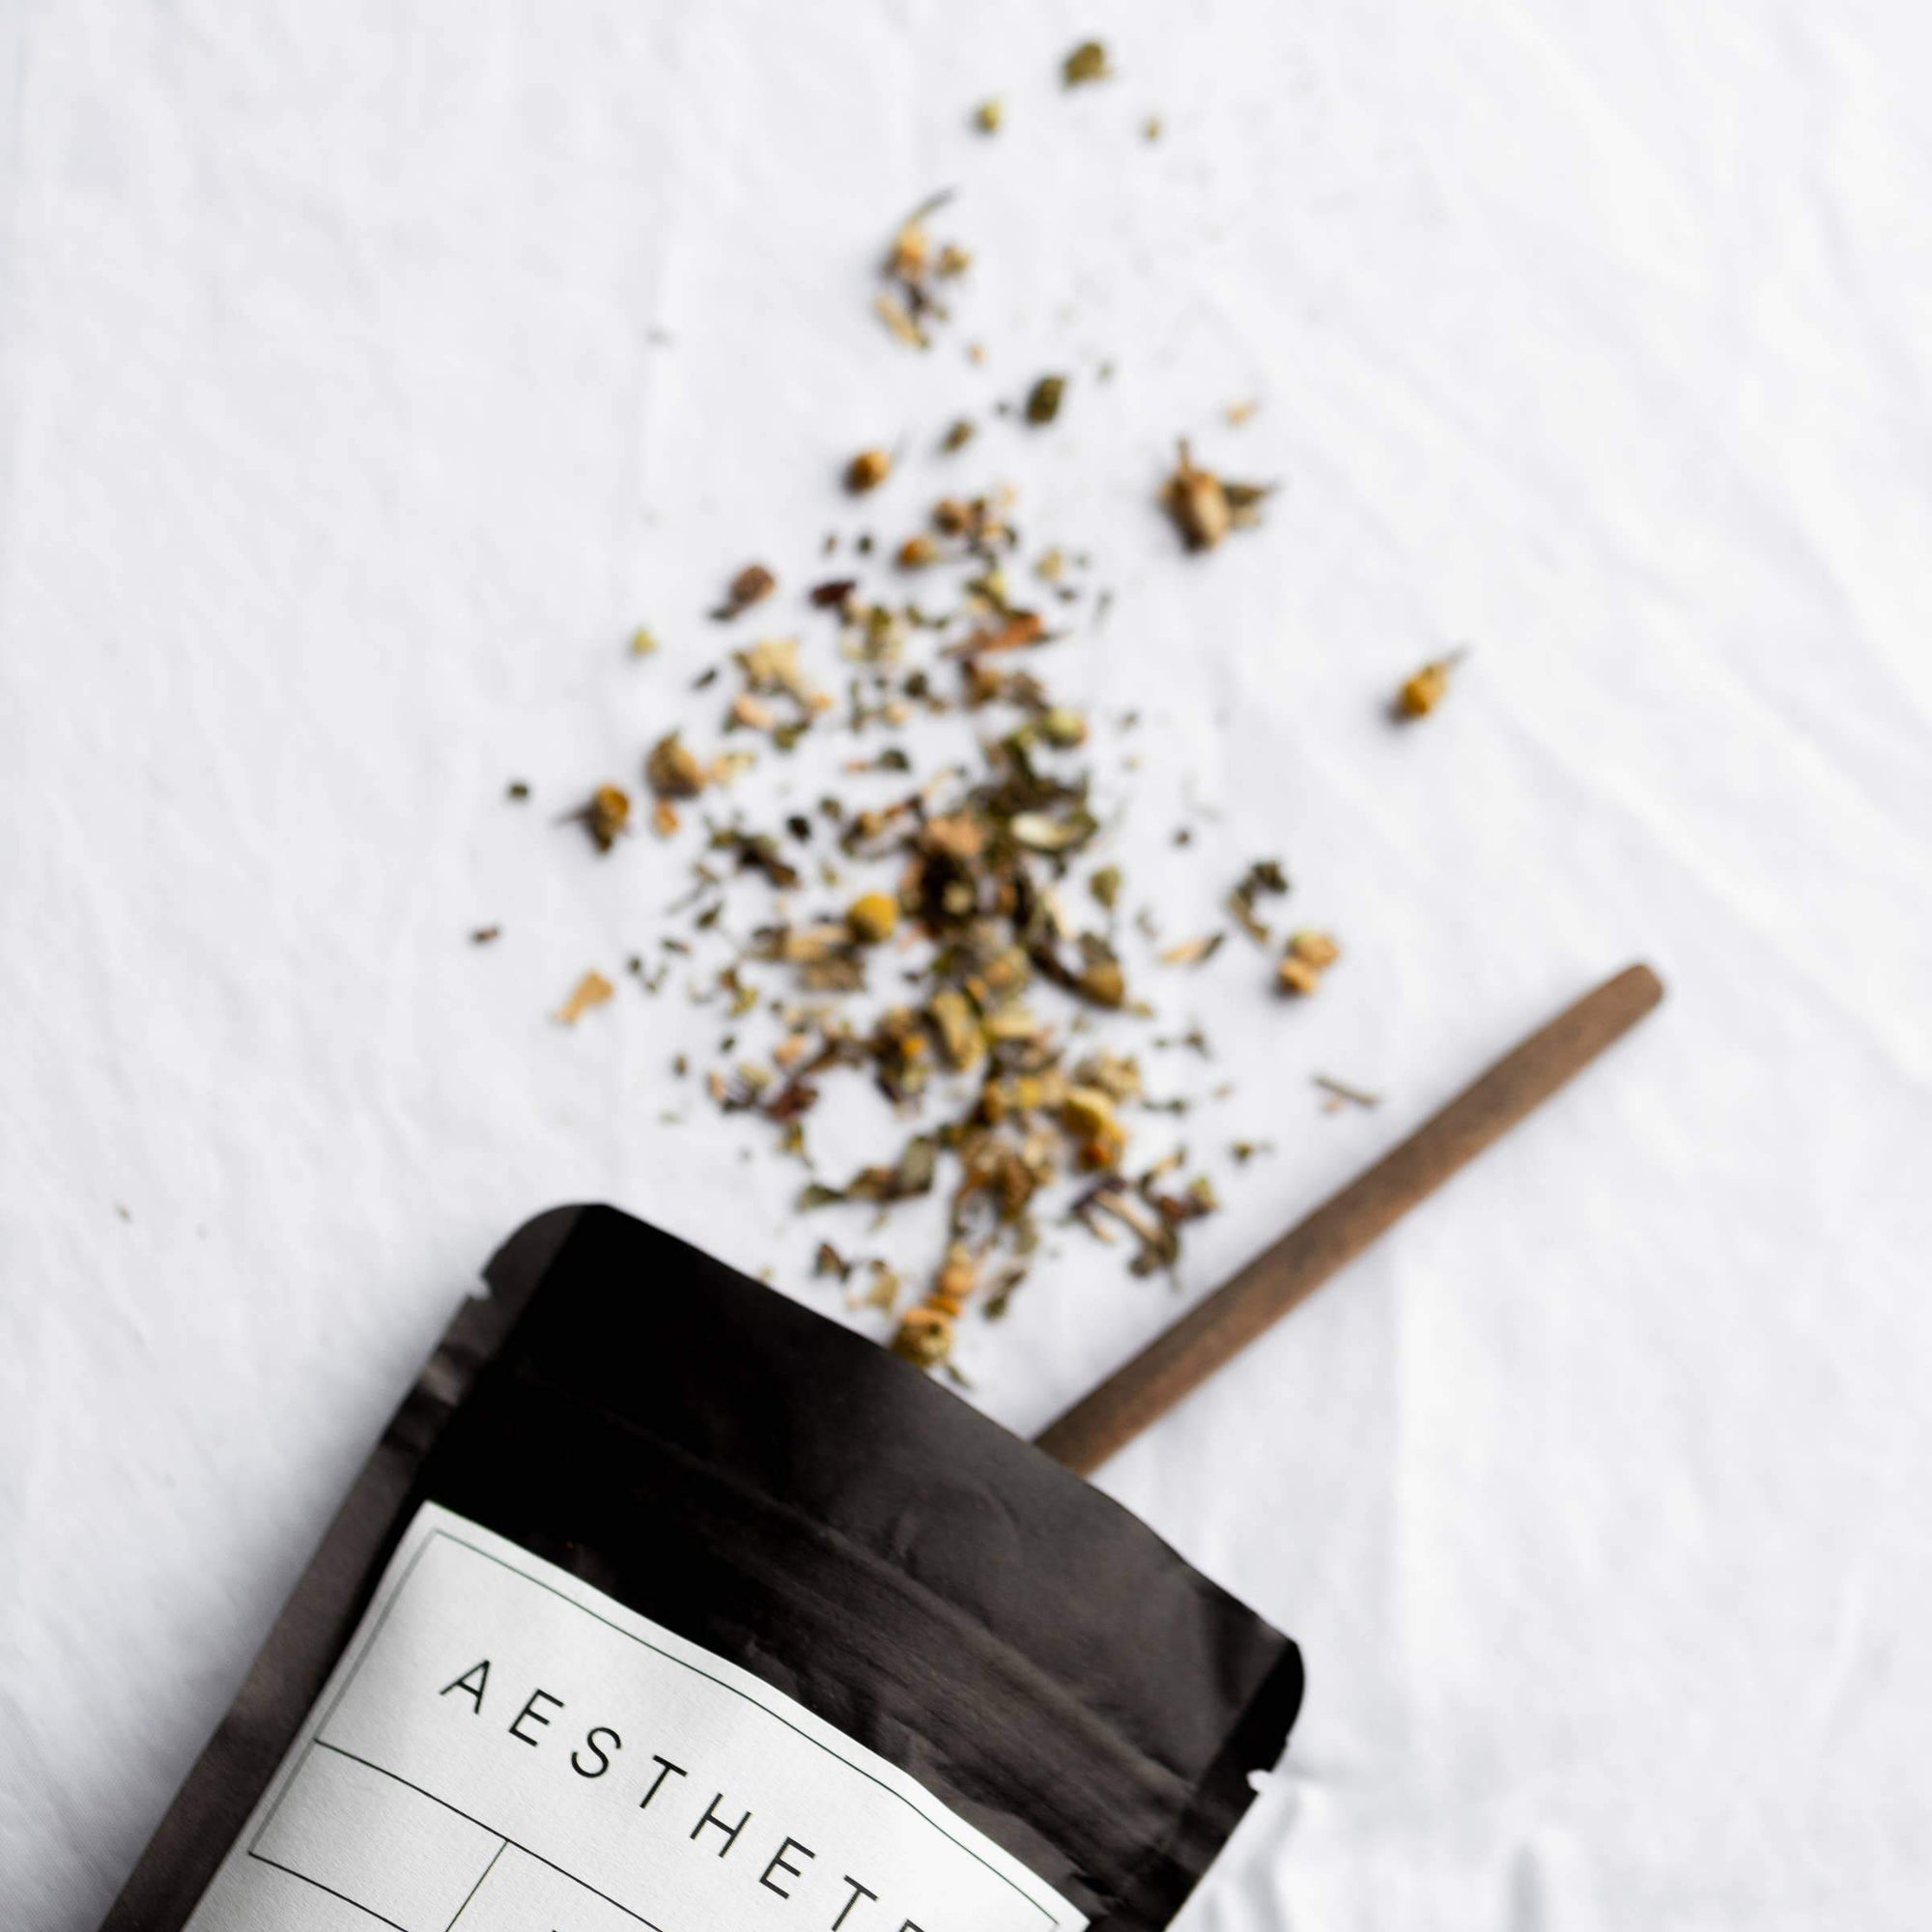 Bad Moon Rising Herbal Blend by Aesthete Tea